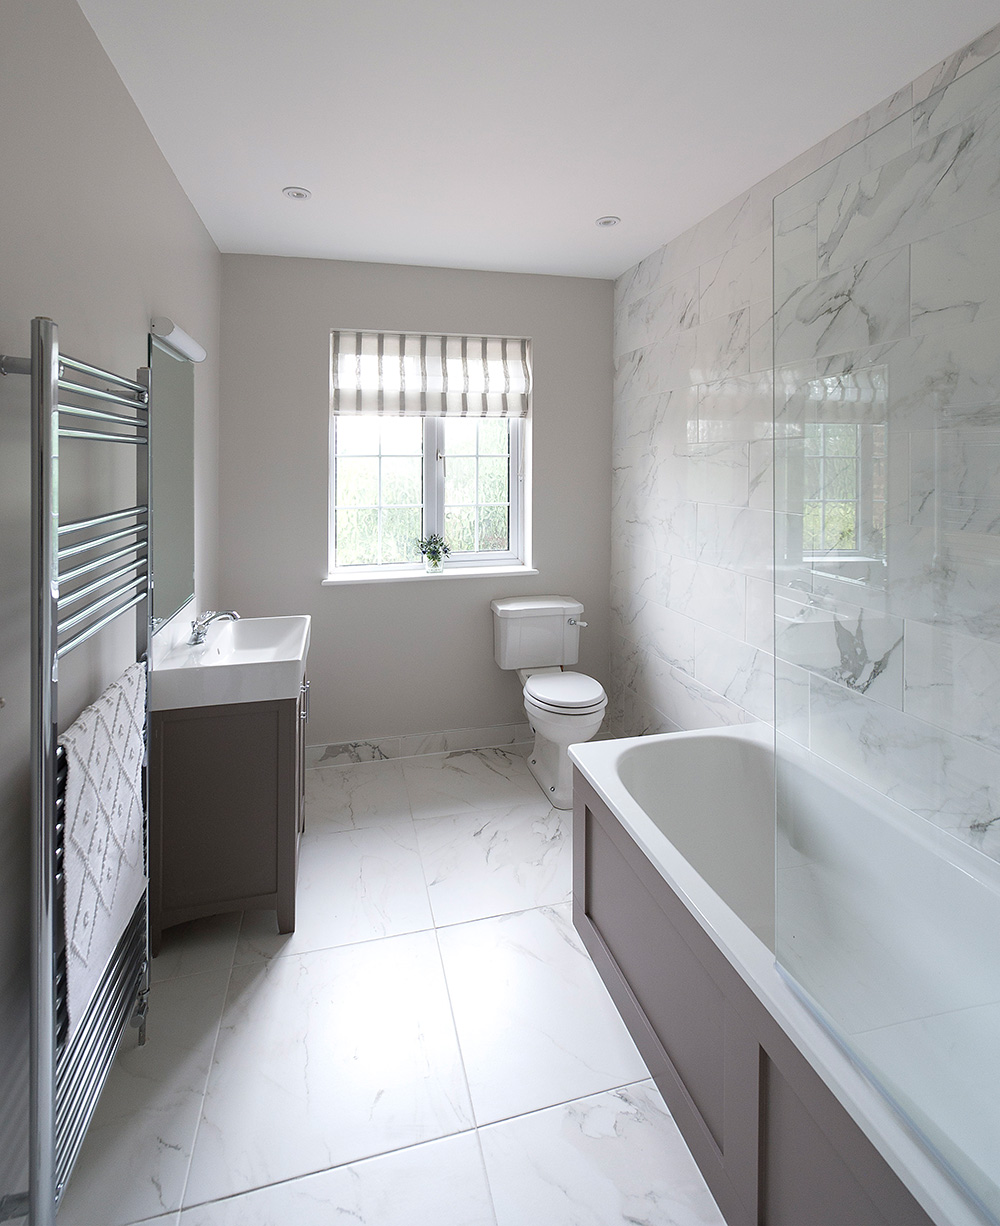 Small bathroom Interior, nikkirees.com, Wimbledon interior designer, home renovation, traditional bathroom